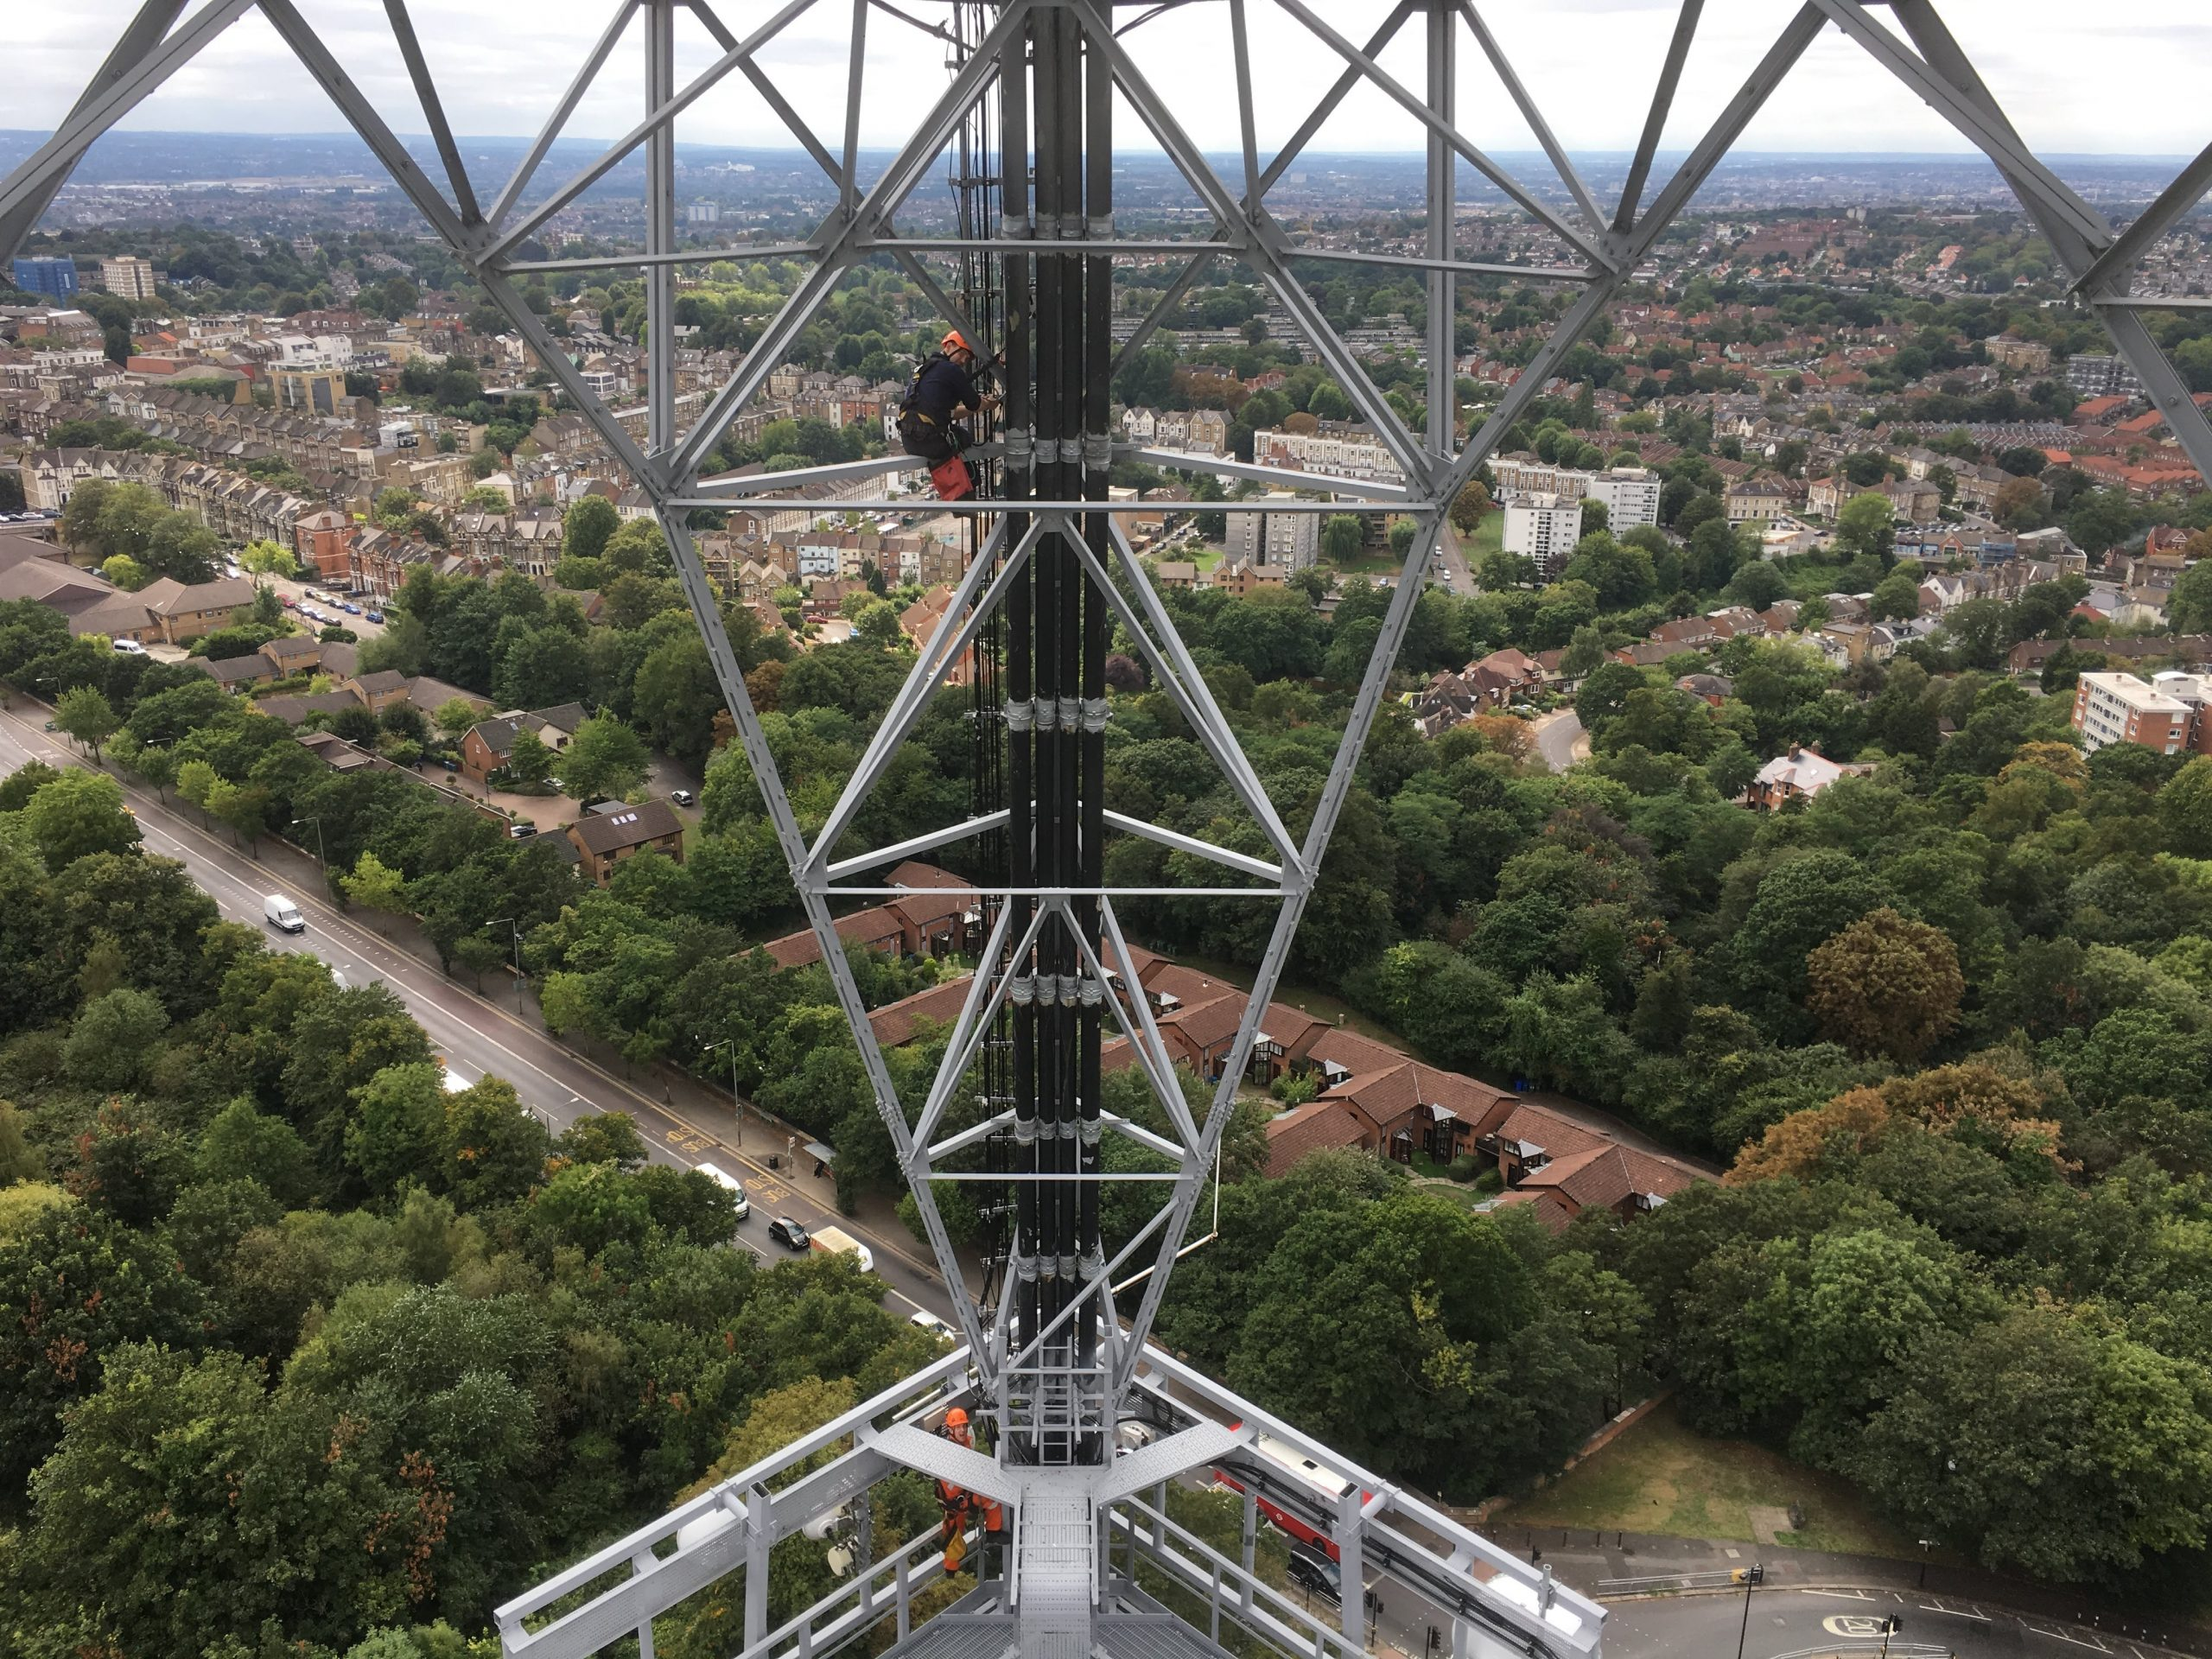 LARS rigging teams carrying out vital maintenance work on the Crystal Palace Tower